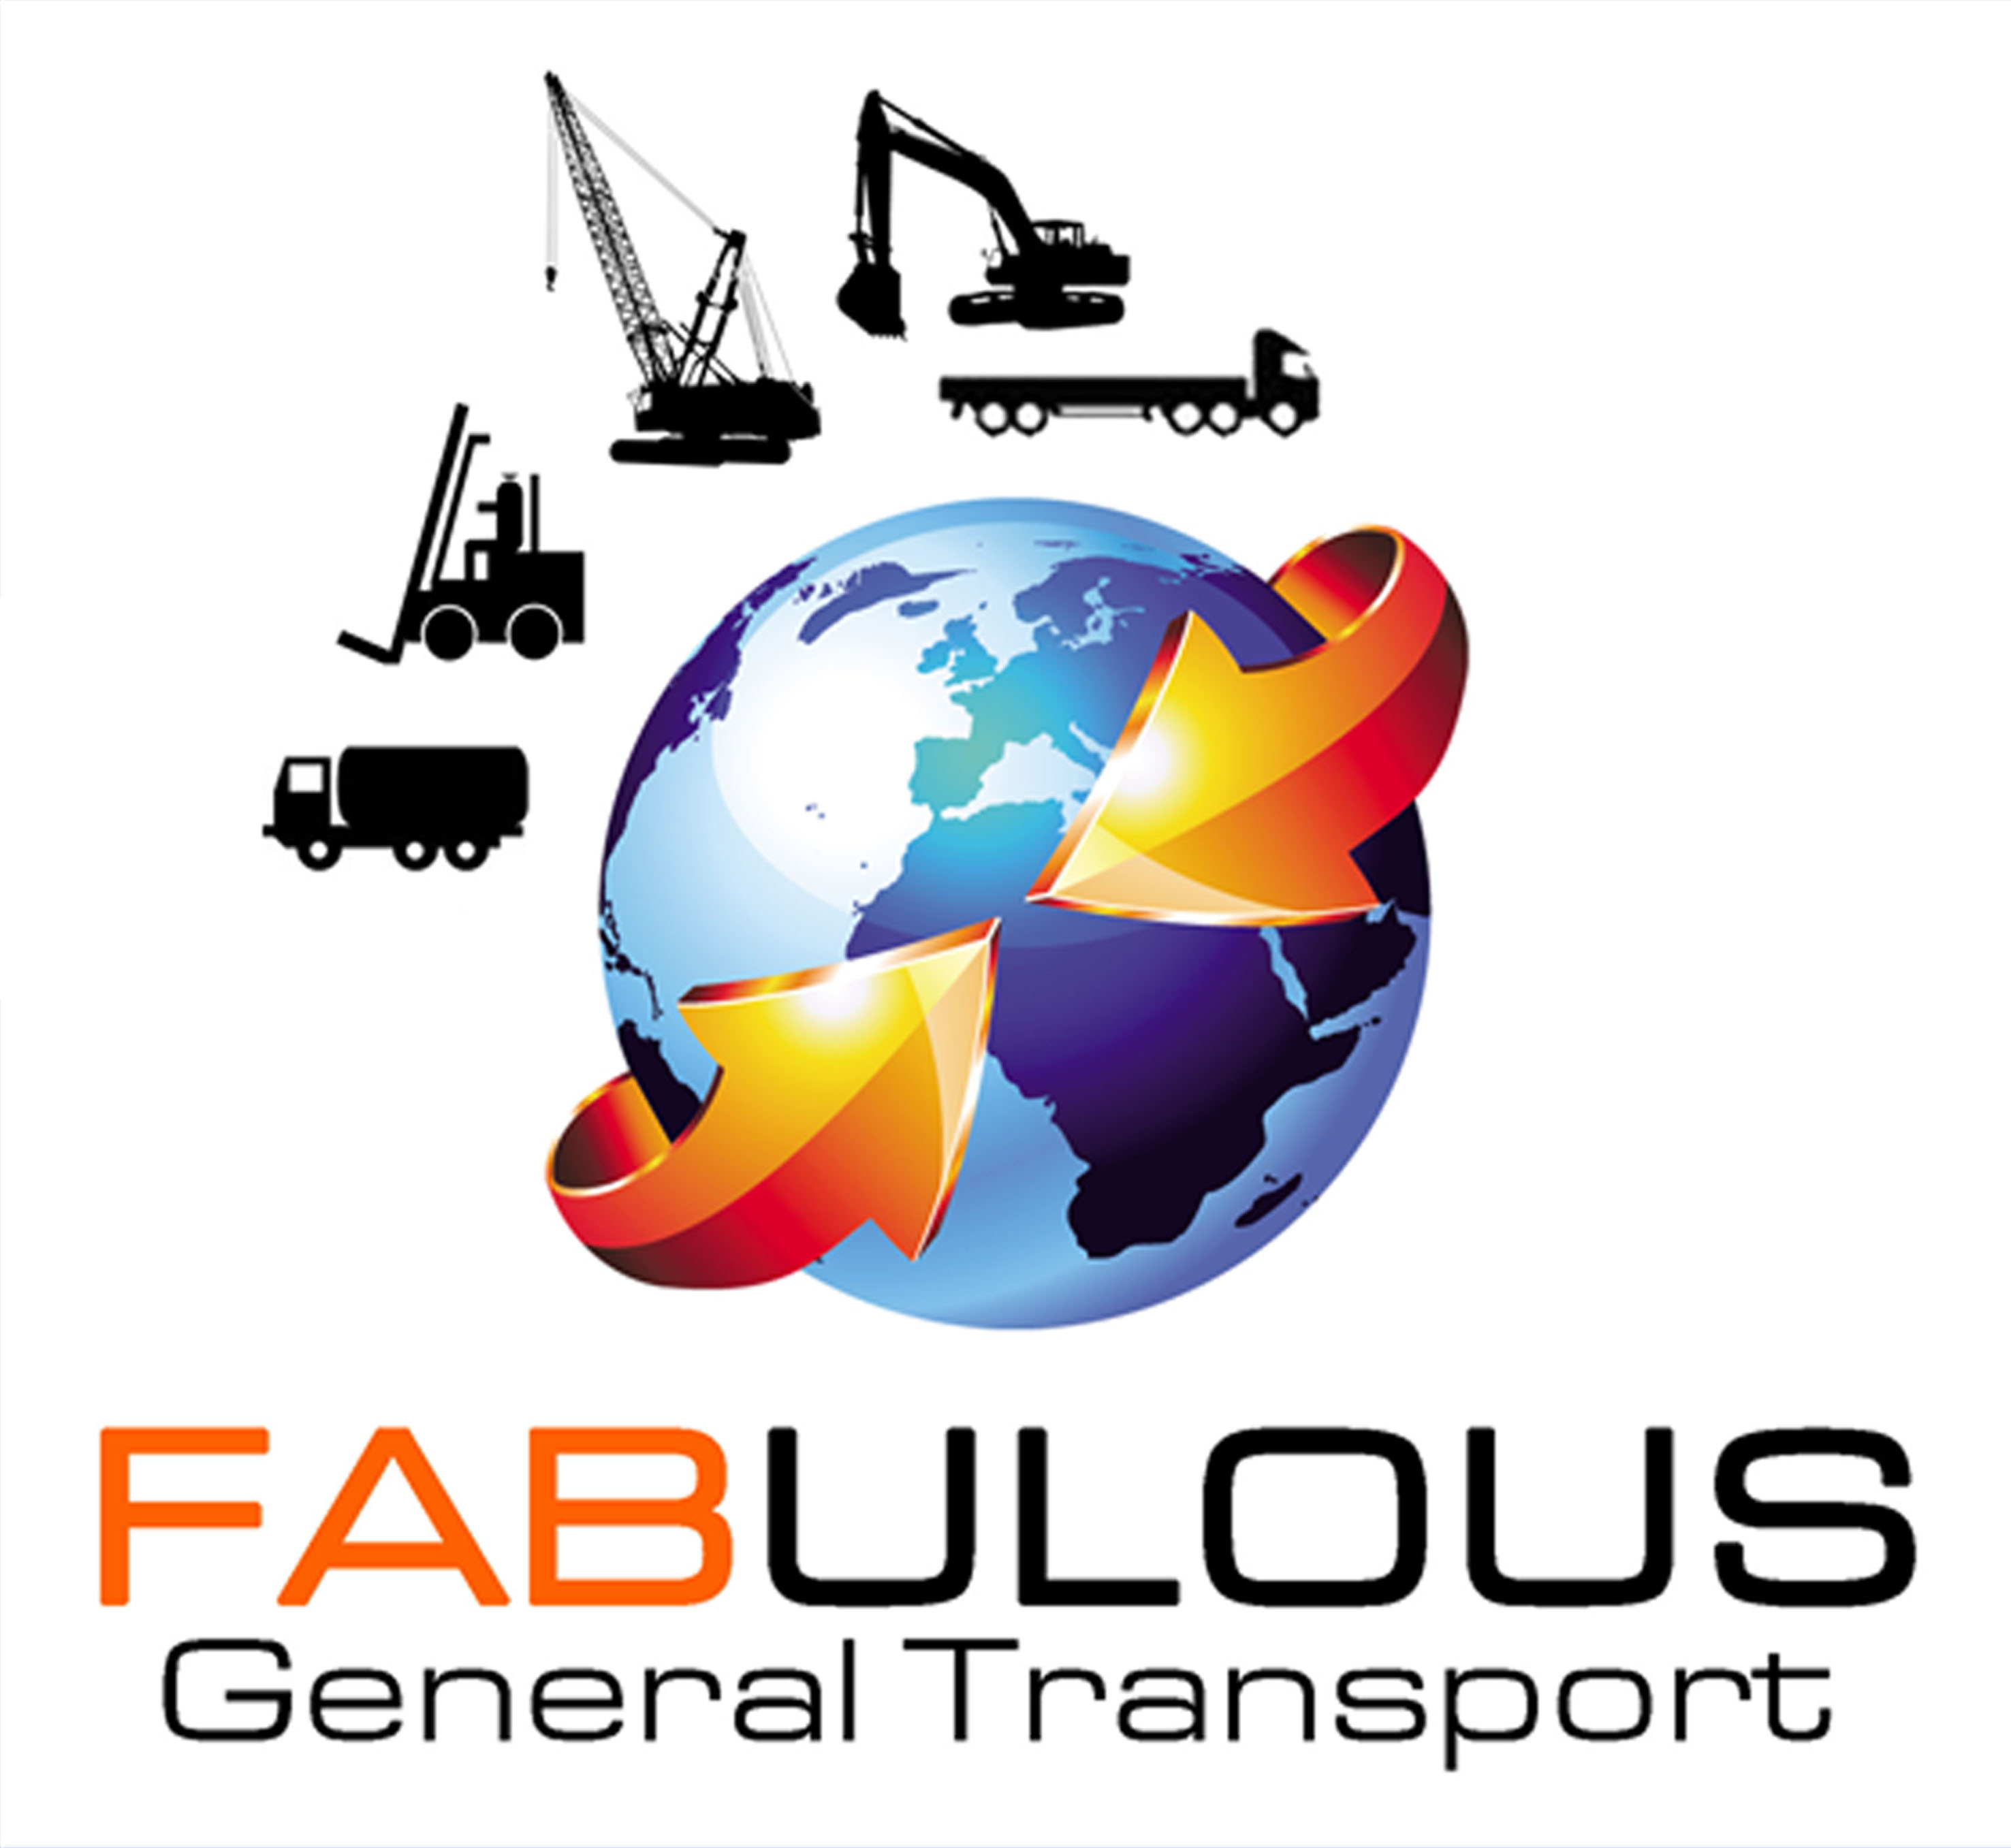 Fabulous General Transport